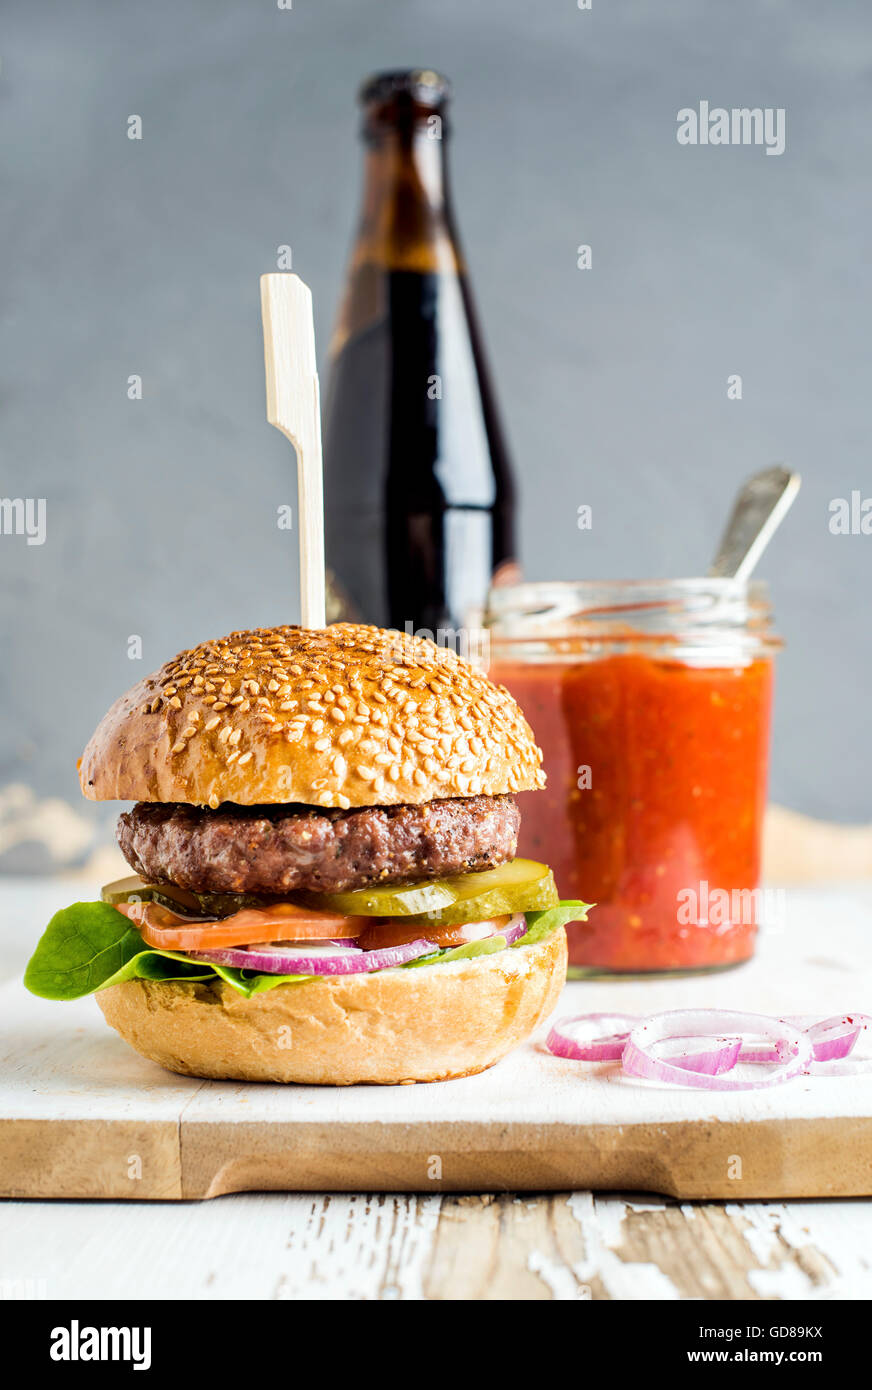 Fresh homemade burger on white wooden serving board with onion rings, salsa sauce and bottle of beer over white Stock Photo